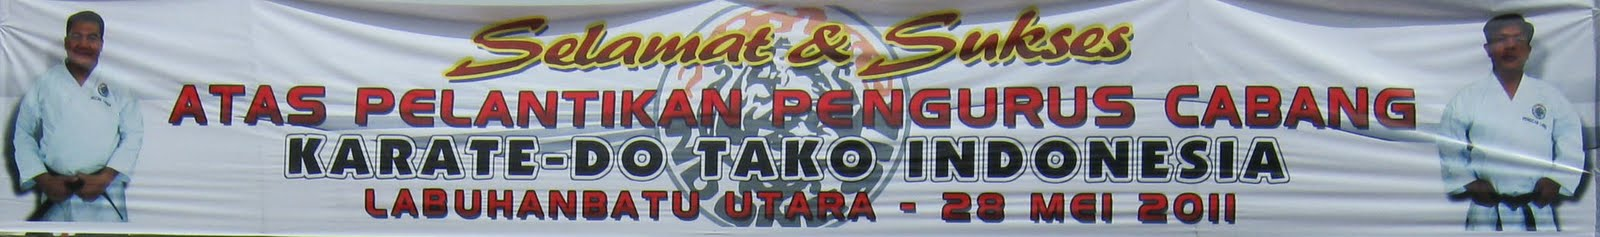 Karate-Do Tako Indonesia Kab. Labura